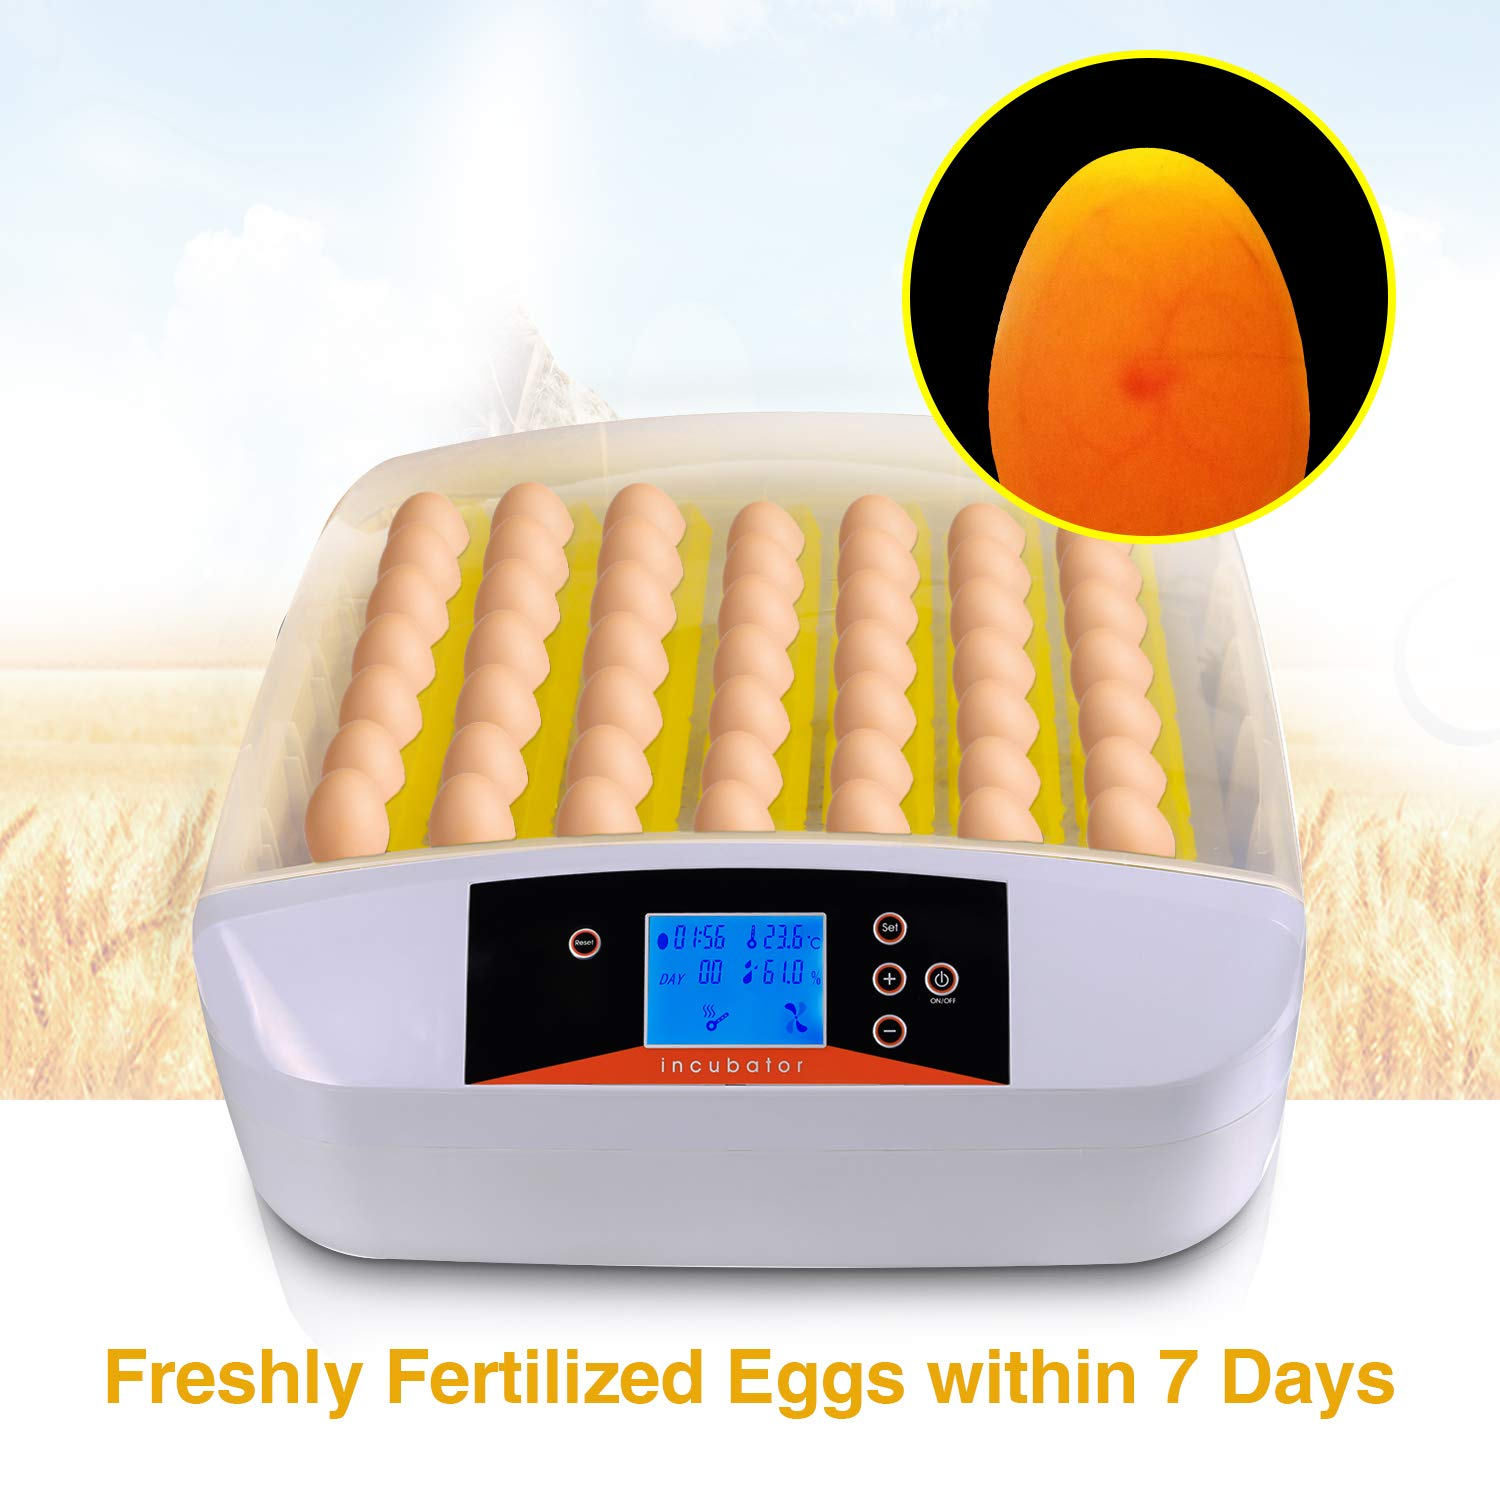 Currens 56 Egg Incubator with Eggs Turner,Digital Automatic Incubators for Hatching Chicken Duck Quail Birds Eggs Poultry Hatcher,Encubadora De Huevos by Currens (Image #5)